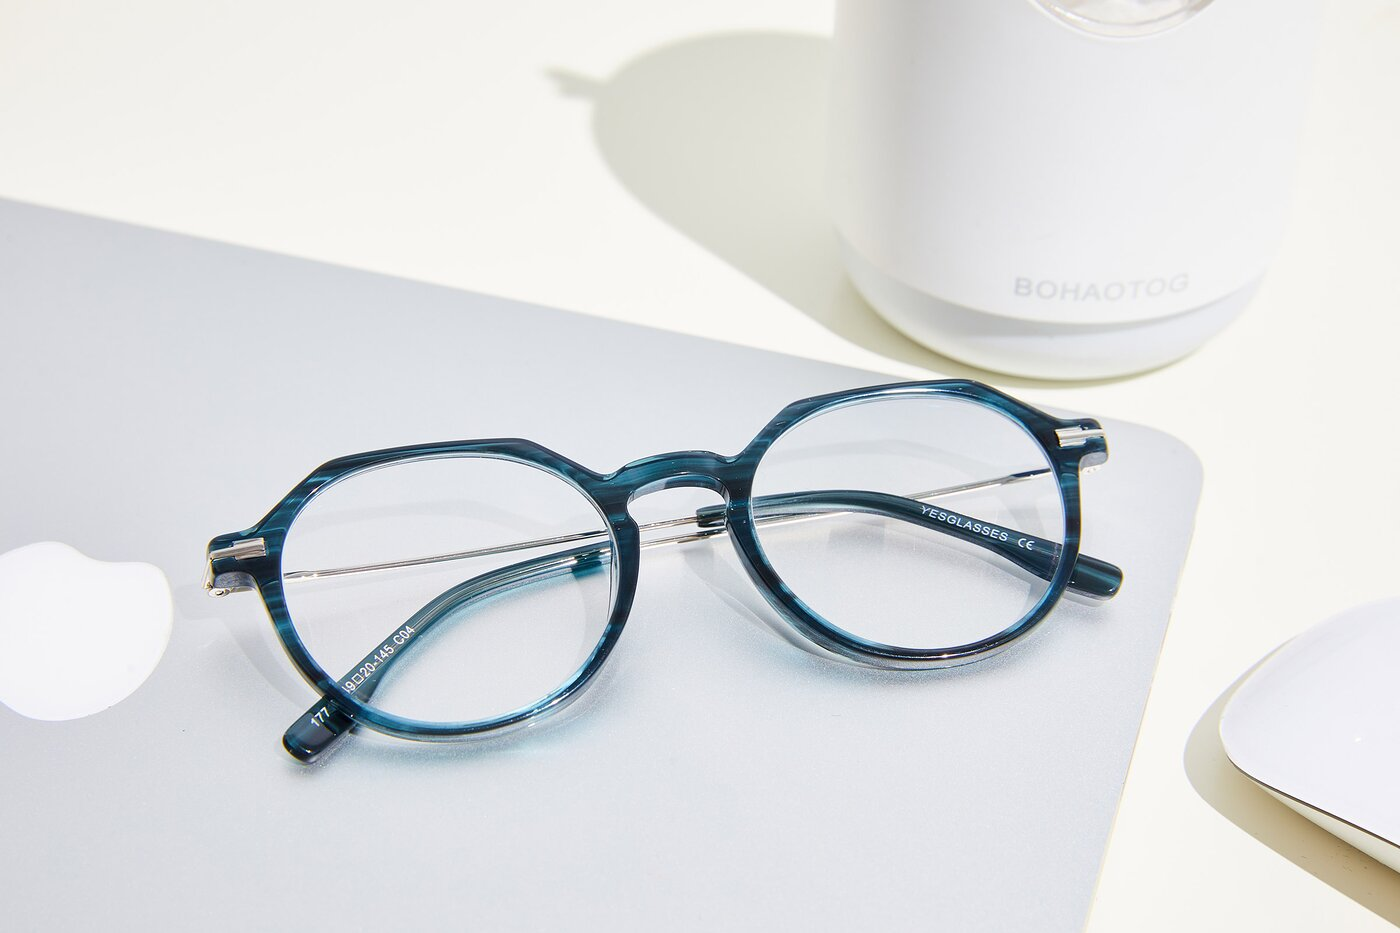 Stripe Blue Geek-Chic Acetate Geometric Eyeglasses